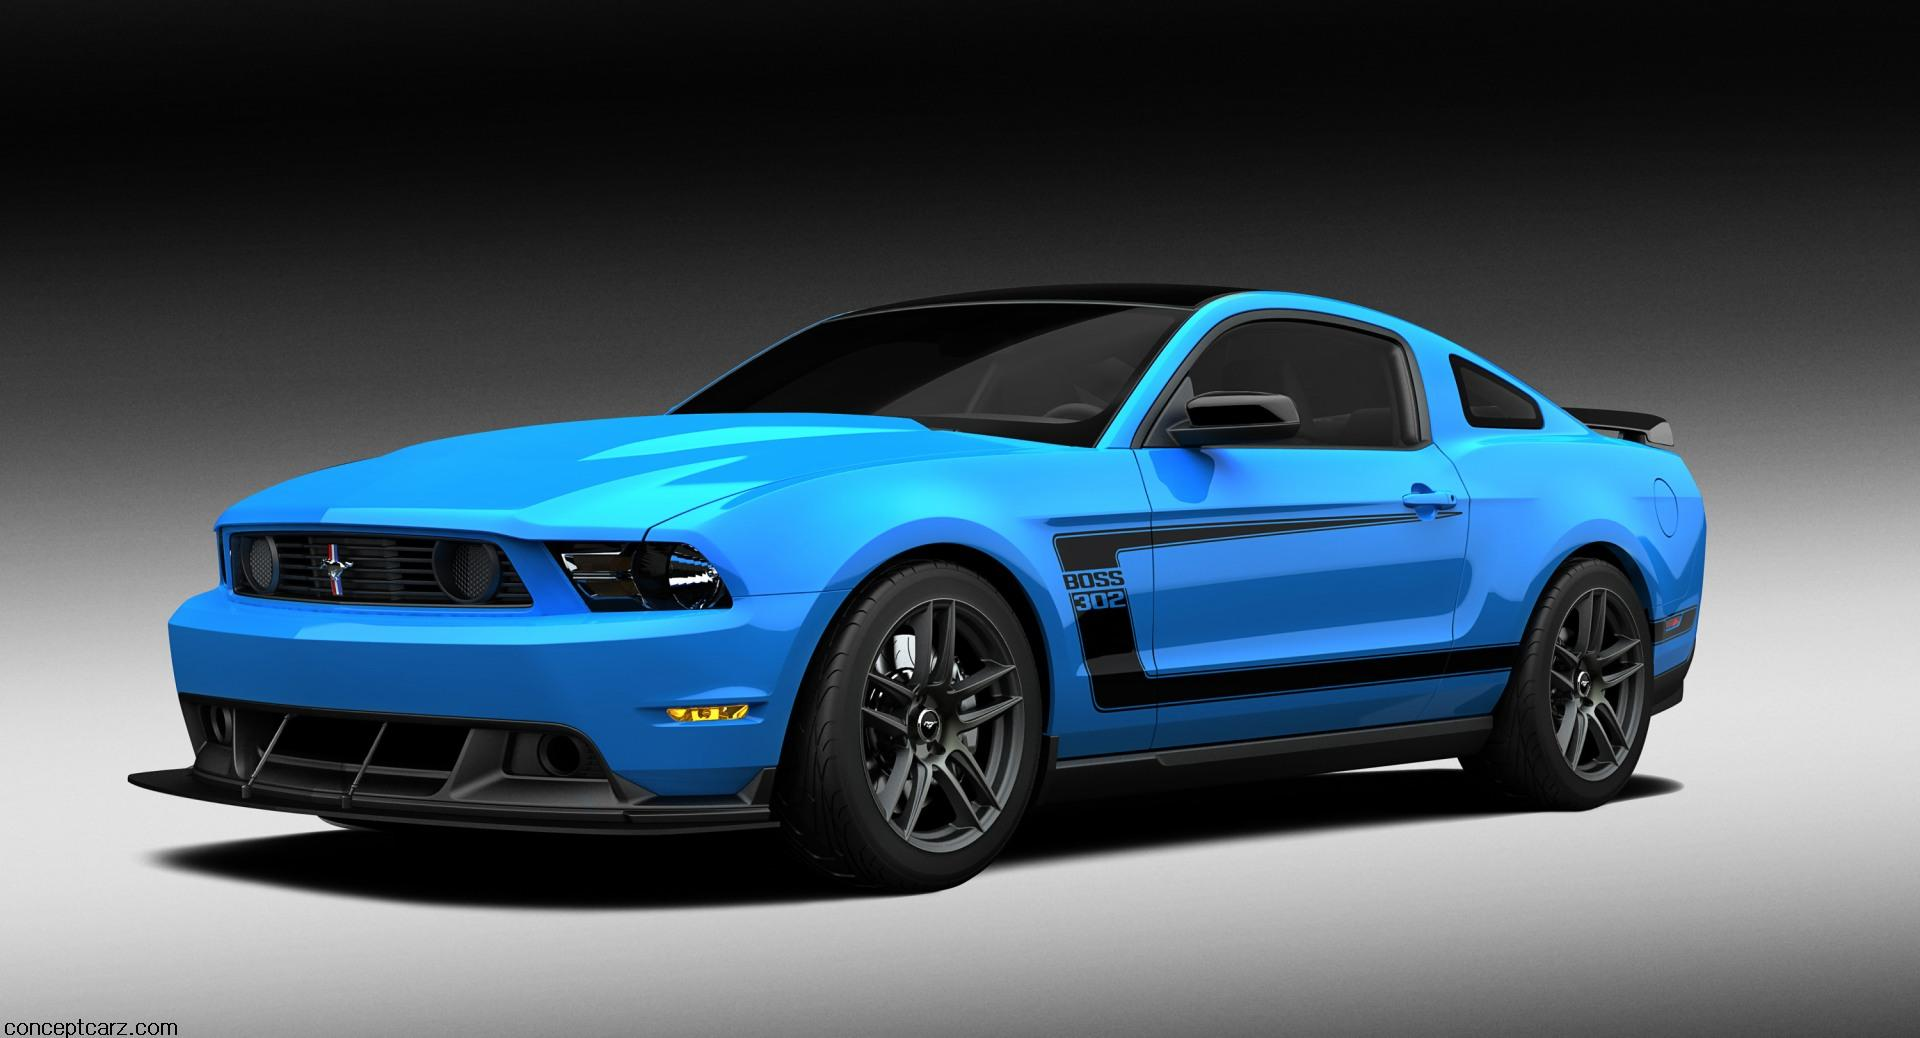 2012 ford mustang grabber blue boss 302 laguna seca. Black Bedroom Furniture Sets. Home Design Ideas